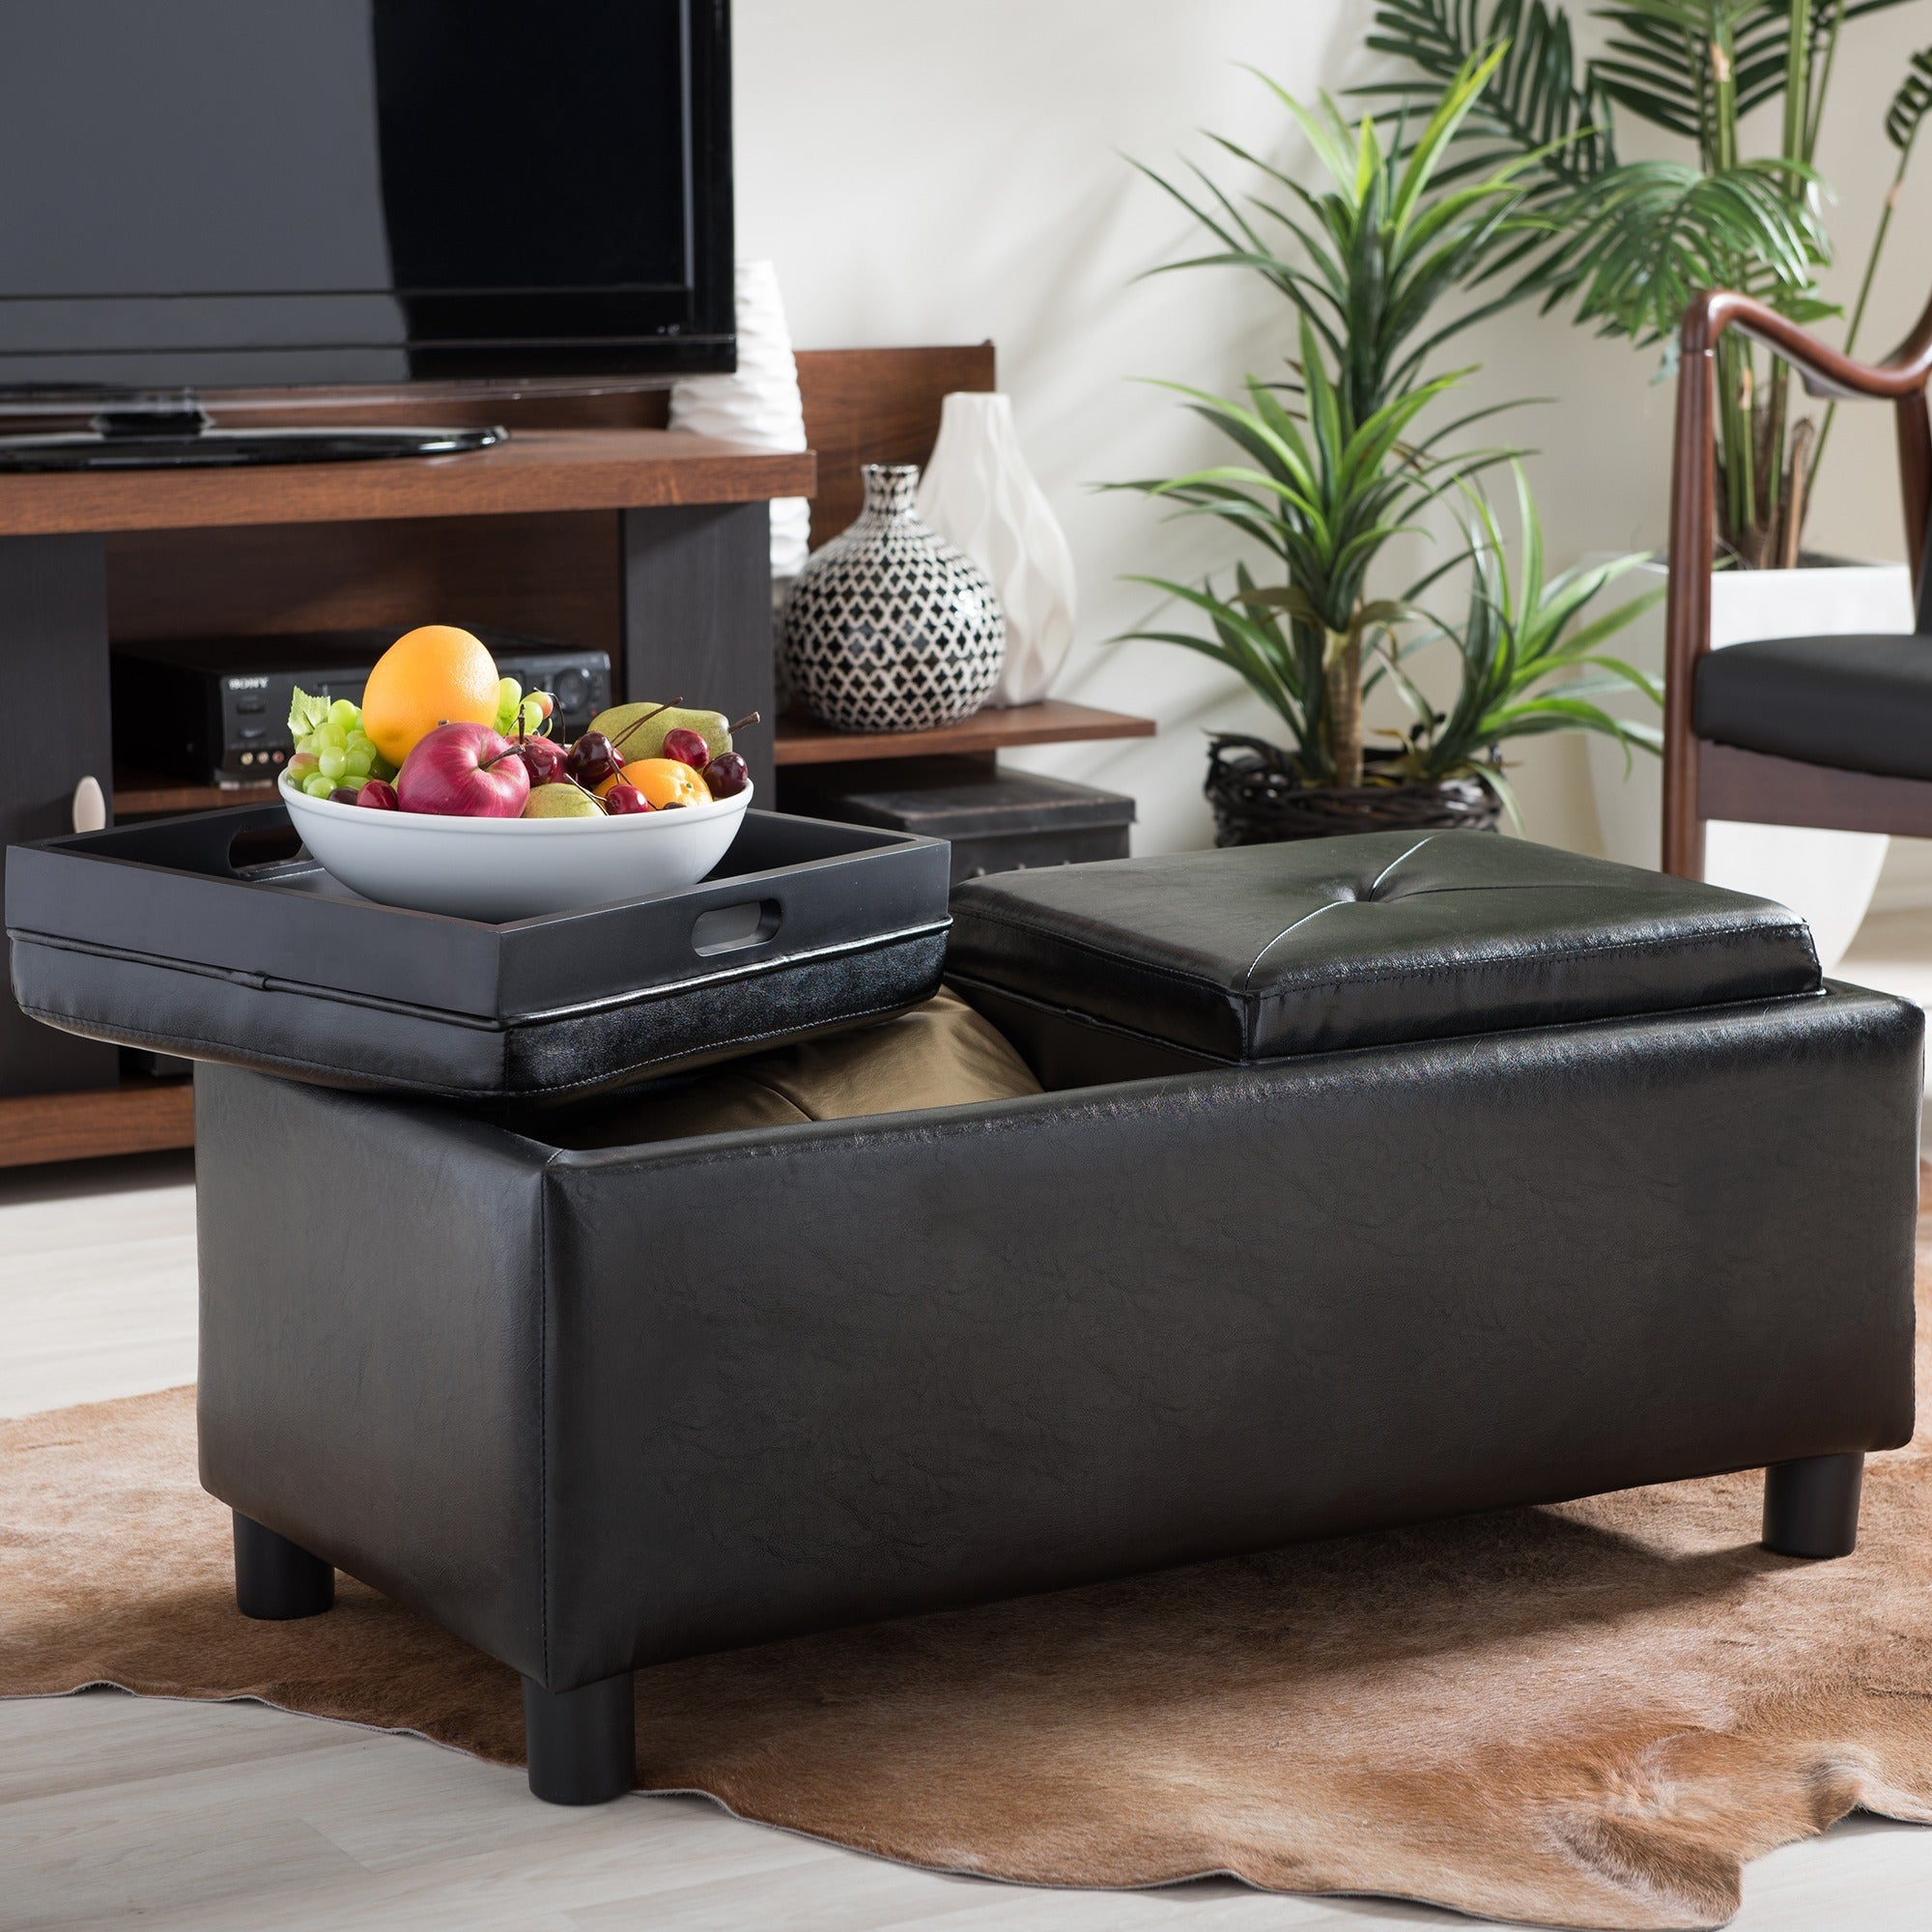 Superb Baxton Studio Billiard Rectangular Dark Brown Bonded Leather Storage Ottoman With Serving Trays Caraccident5 Cool Chair Designs And Ideas Caraccident5Info